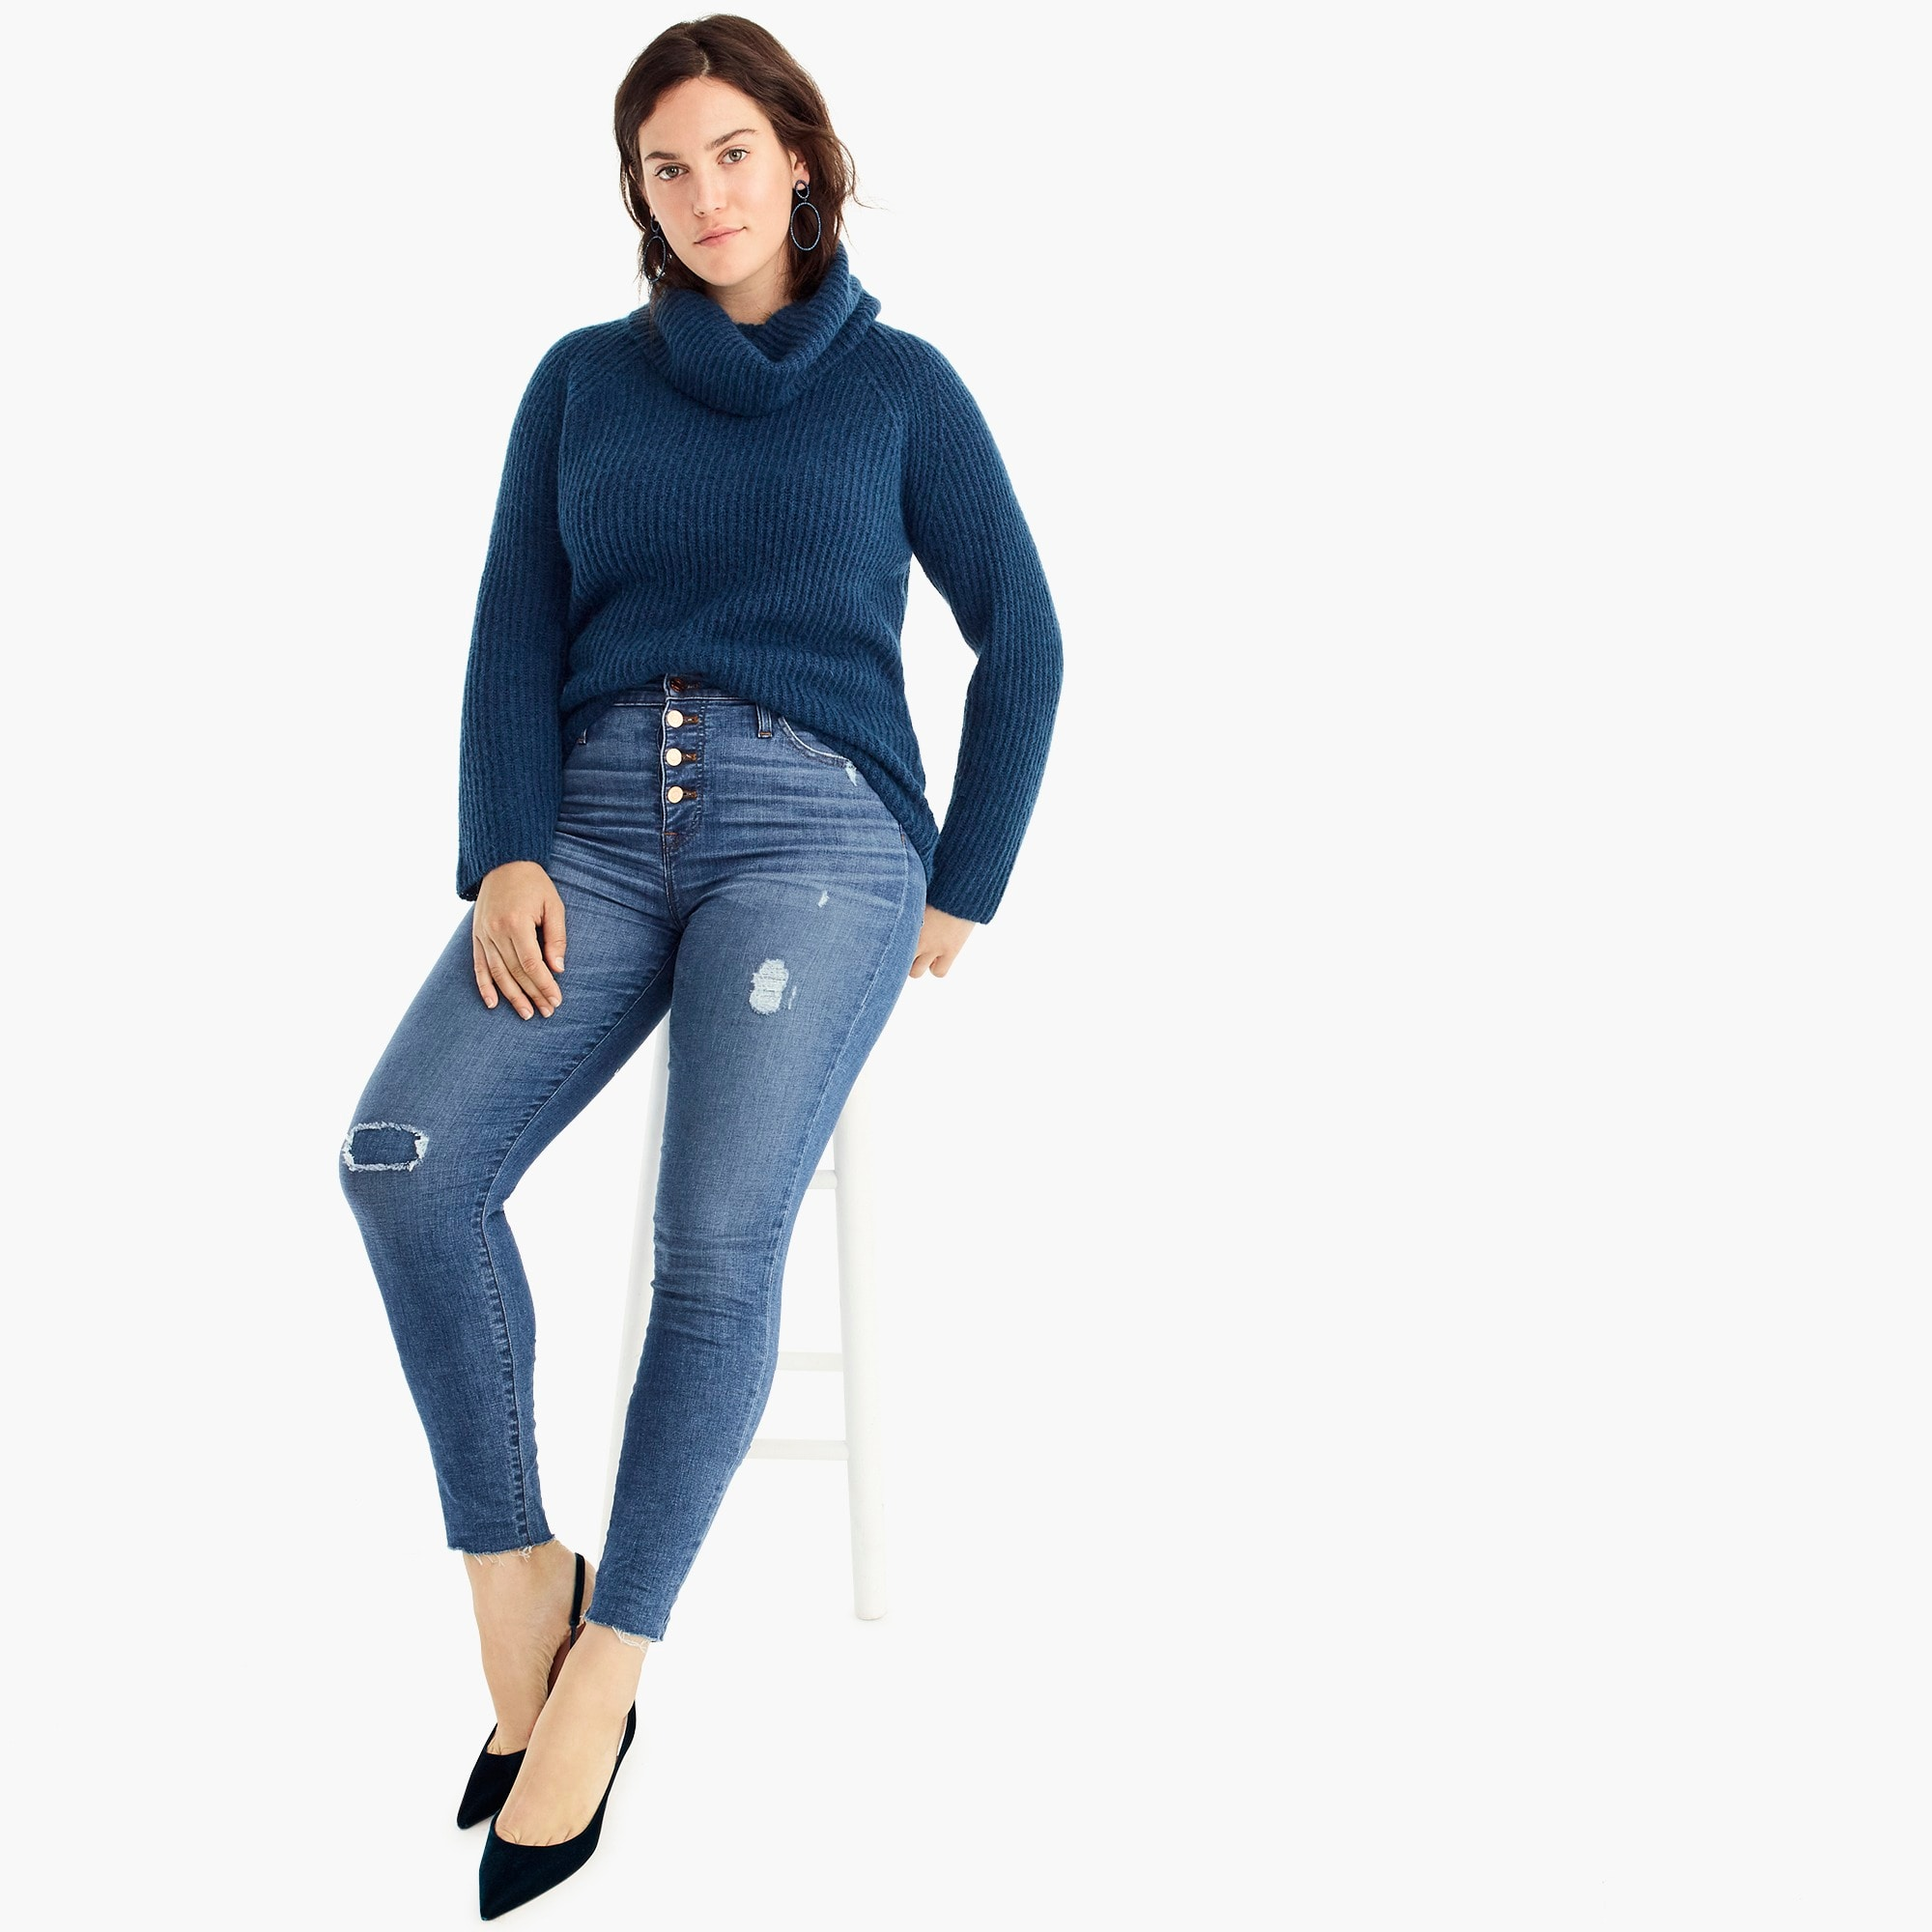 Image 1 for Point Sur ribbed turtleneck sweater